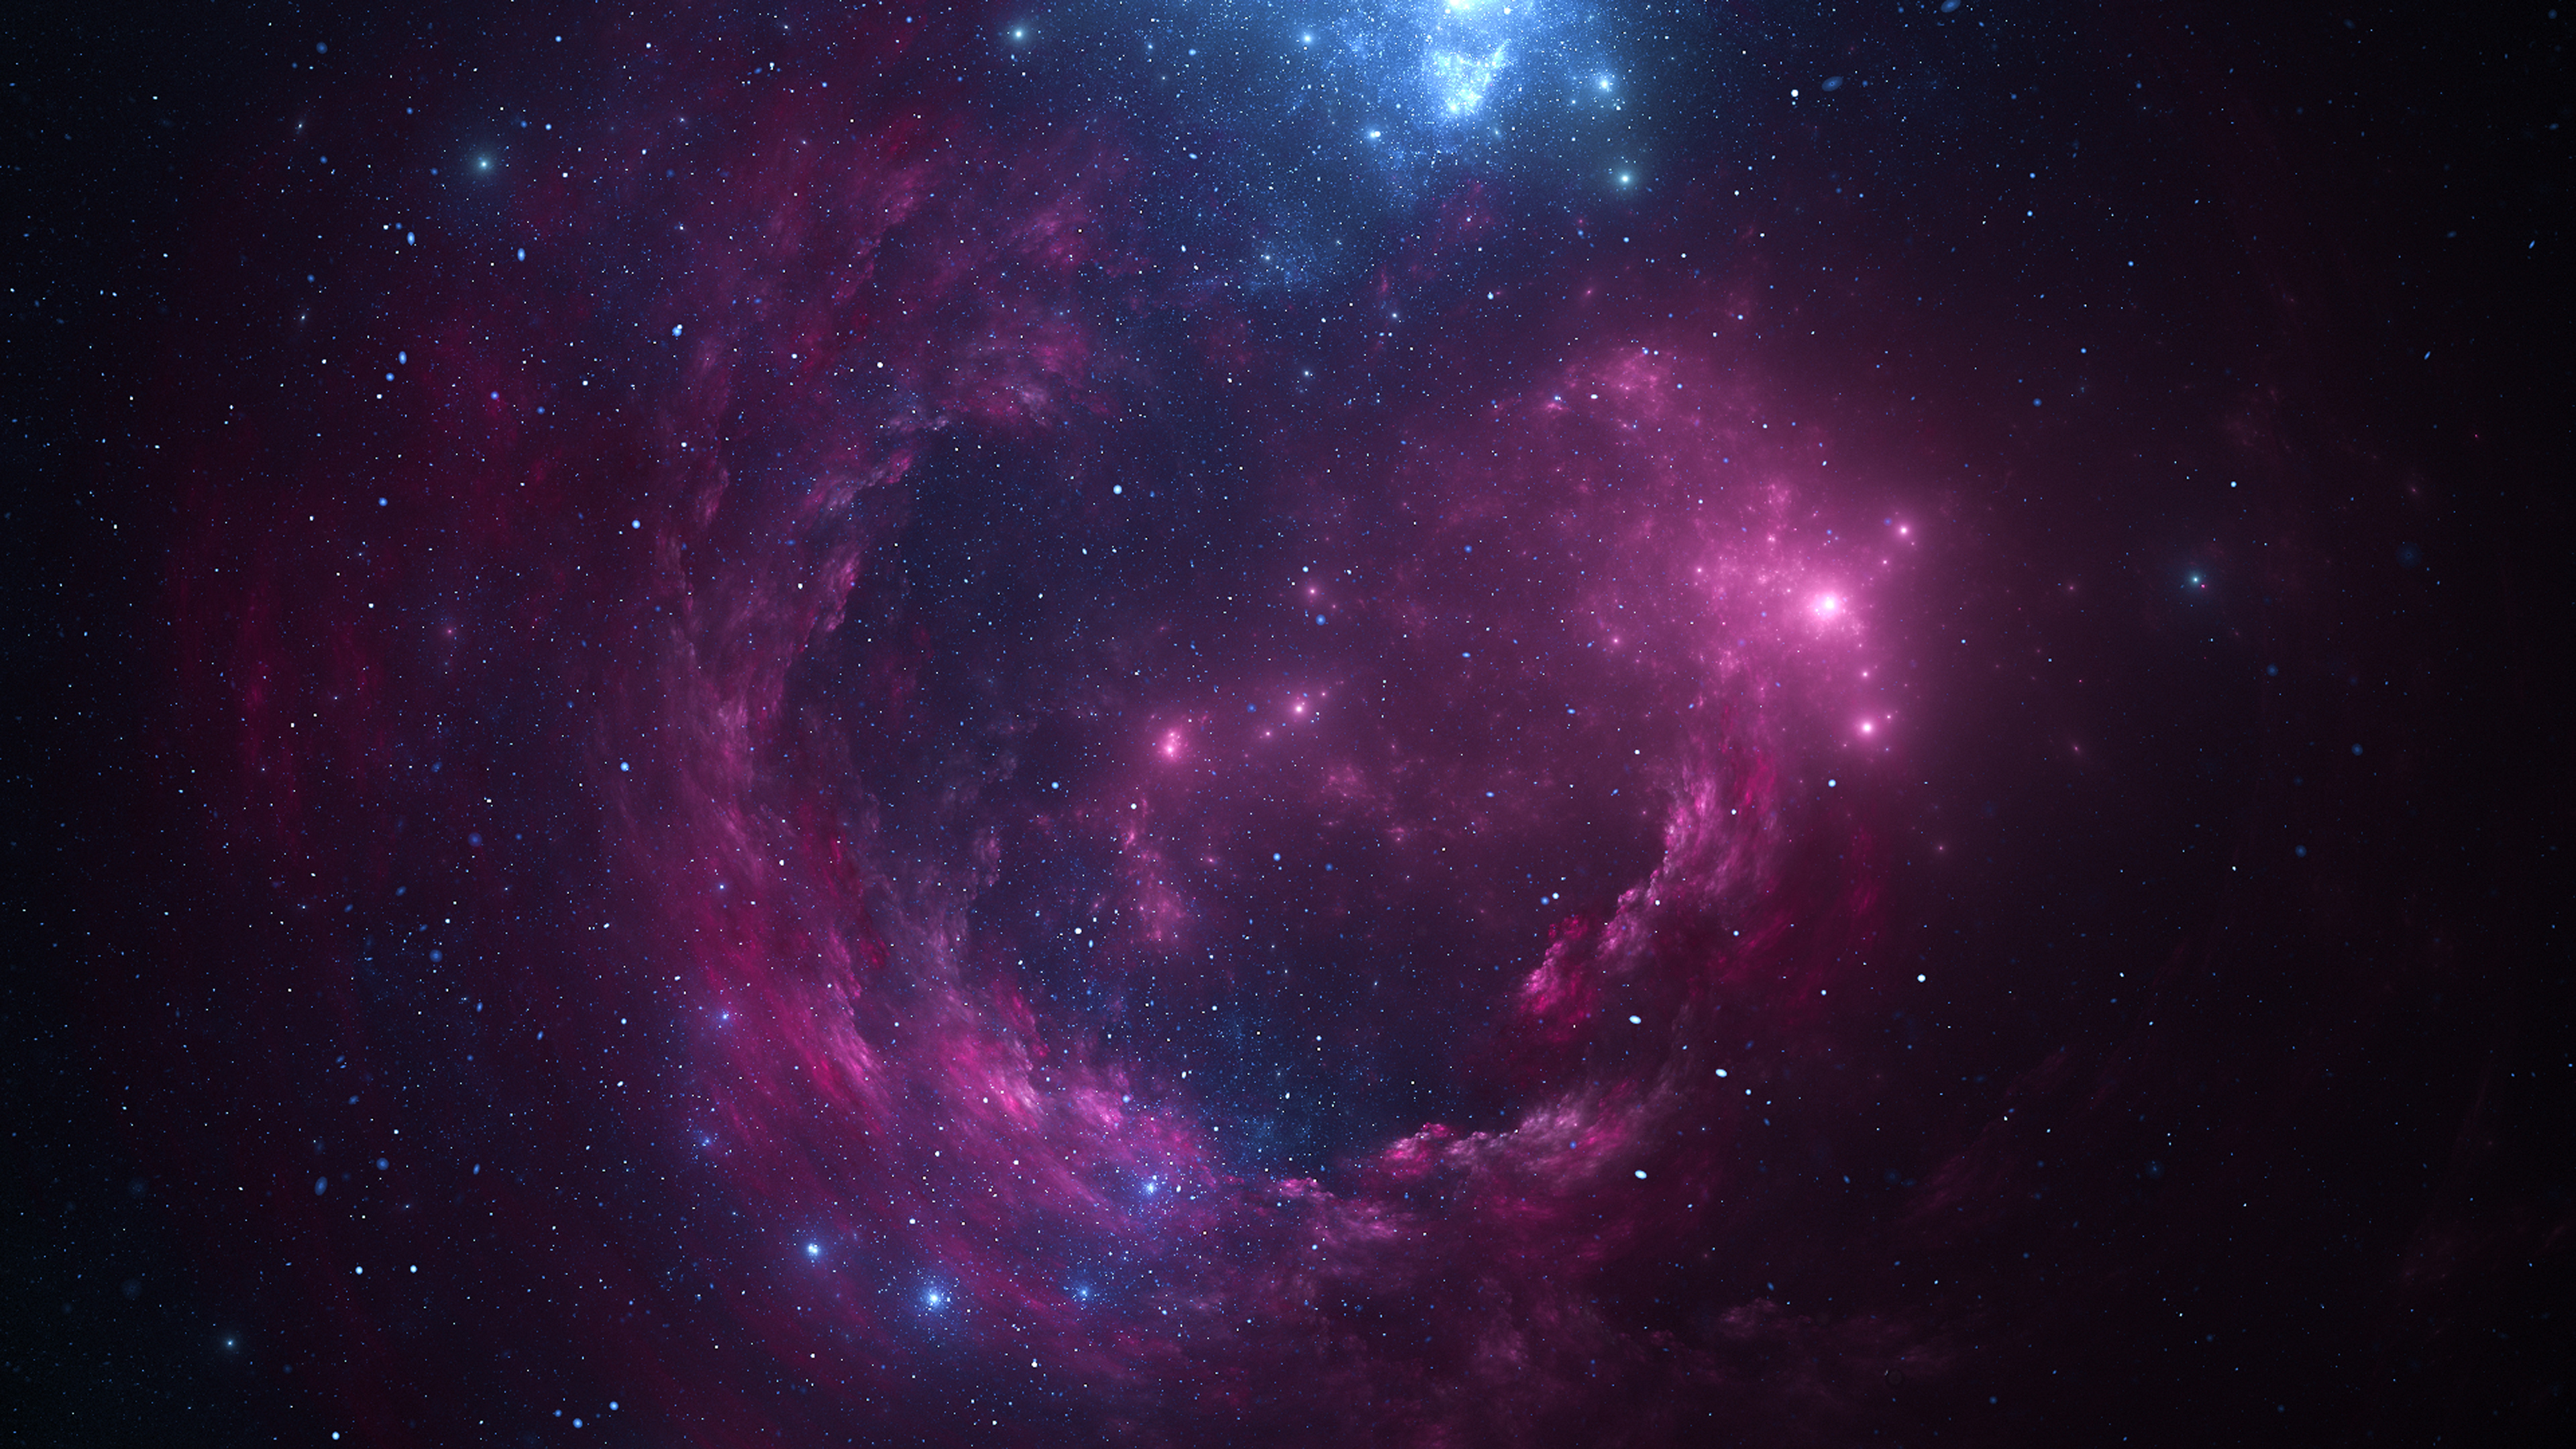 1360x768 Space Pink Stars 4k Laptop Hd Hd 4k Wallpapers Images Backgrounds Photos And Pictures